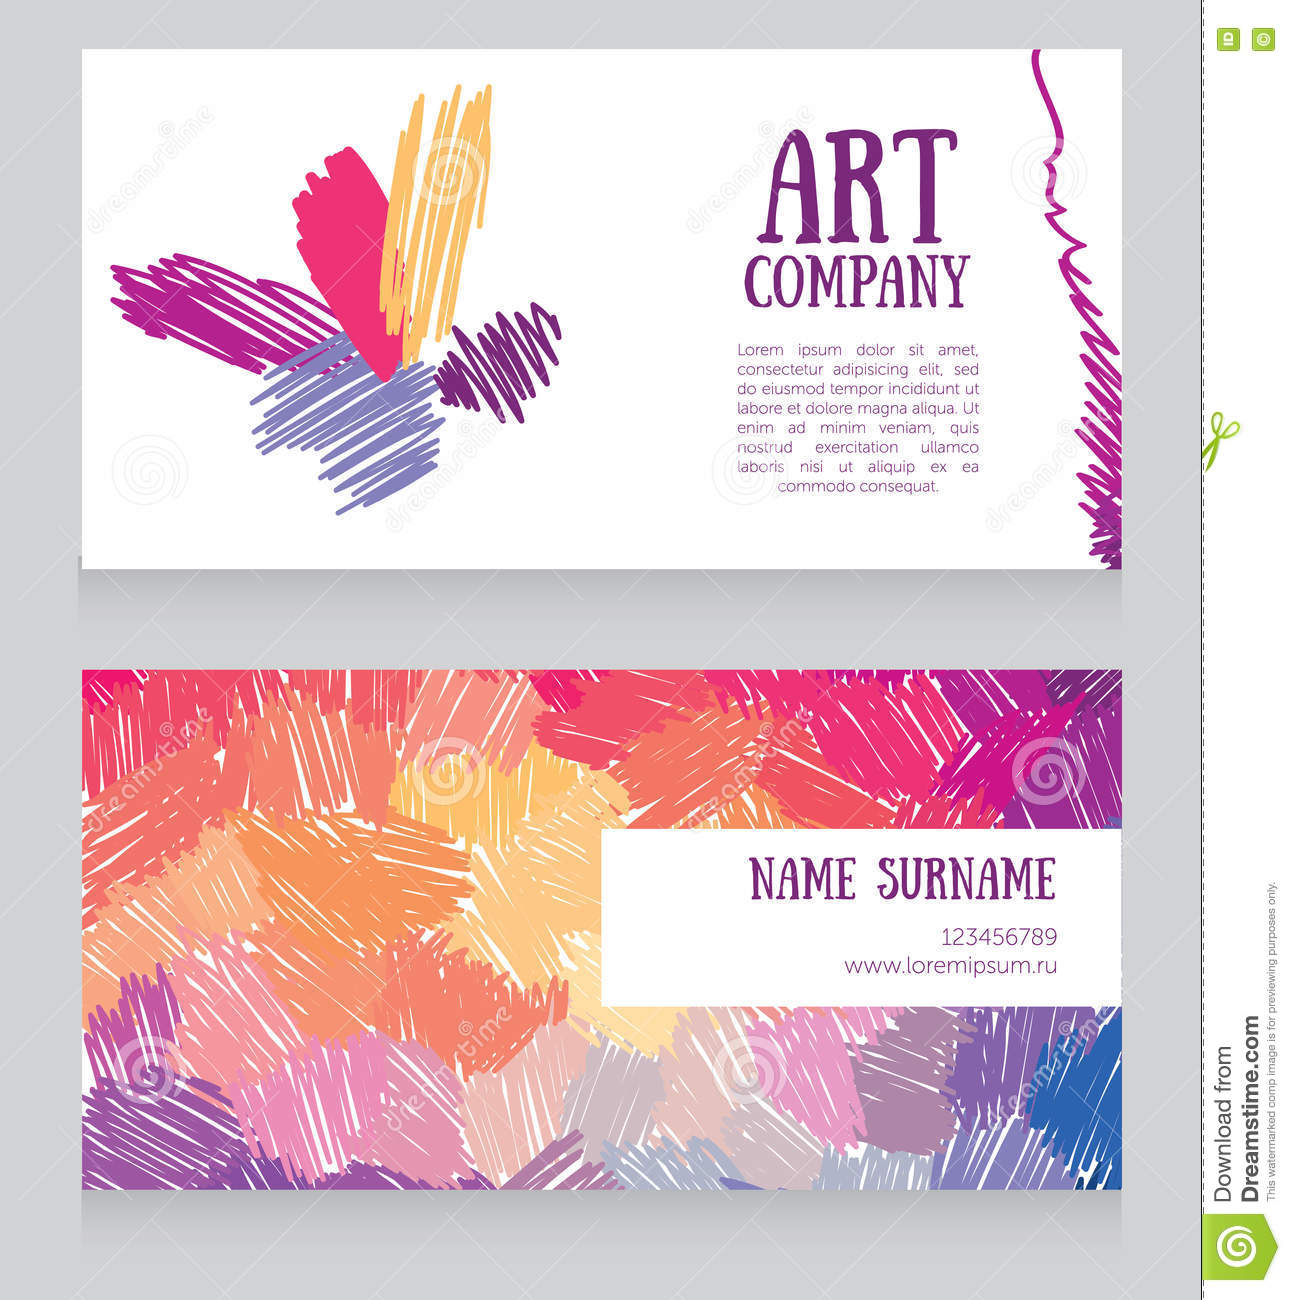 Banners template with colorful strokes stock vector illustration download banners template with colorful strokes stock vector illustration of creativity disco 72744530 reheart Images